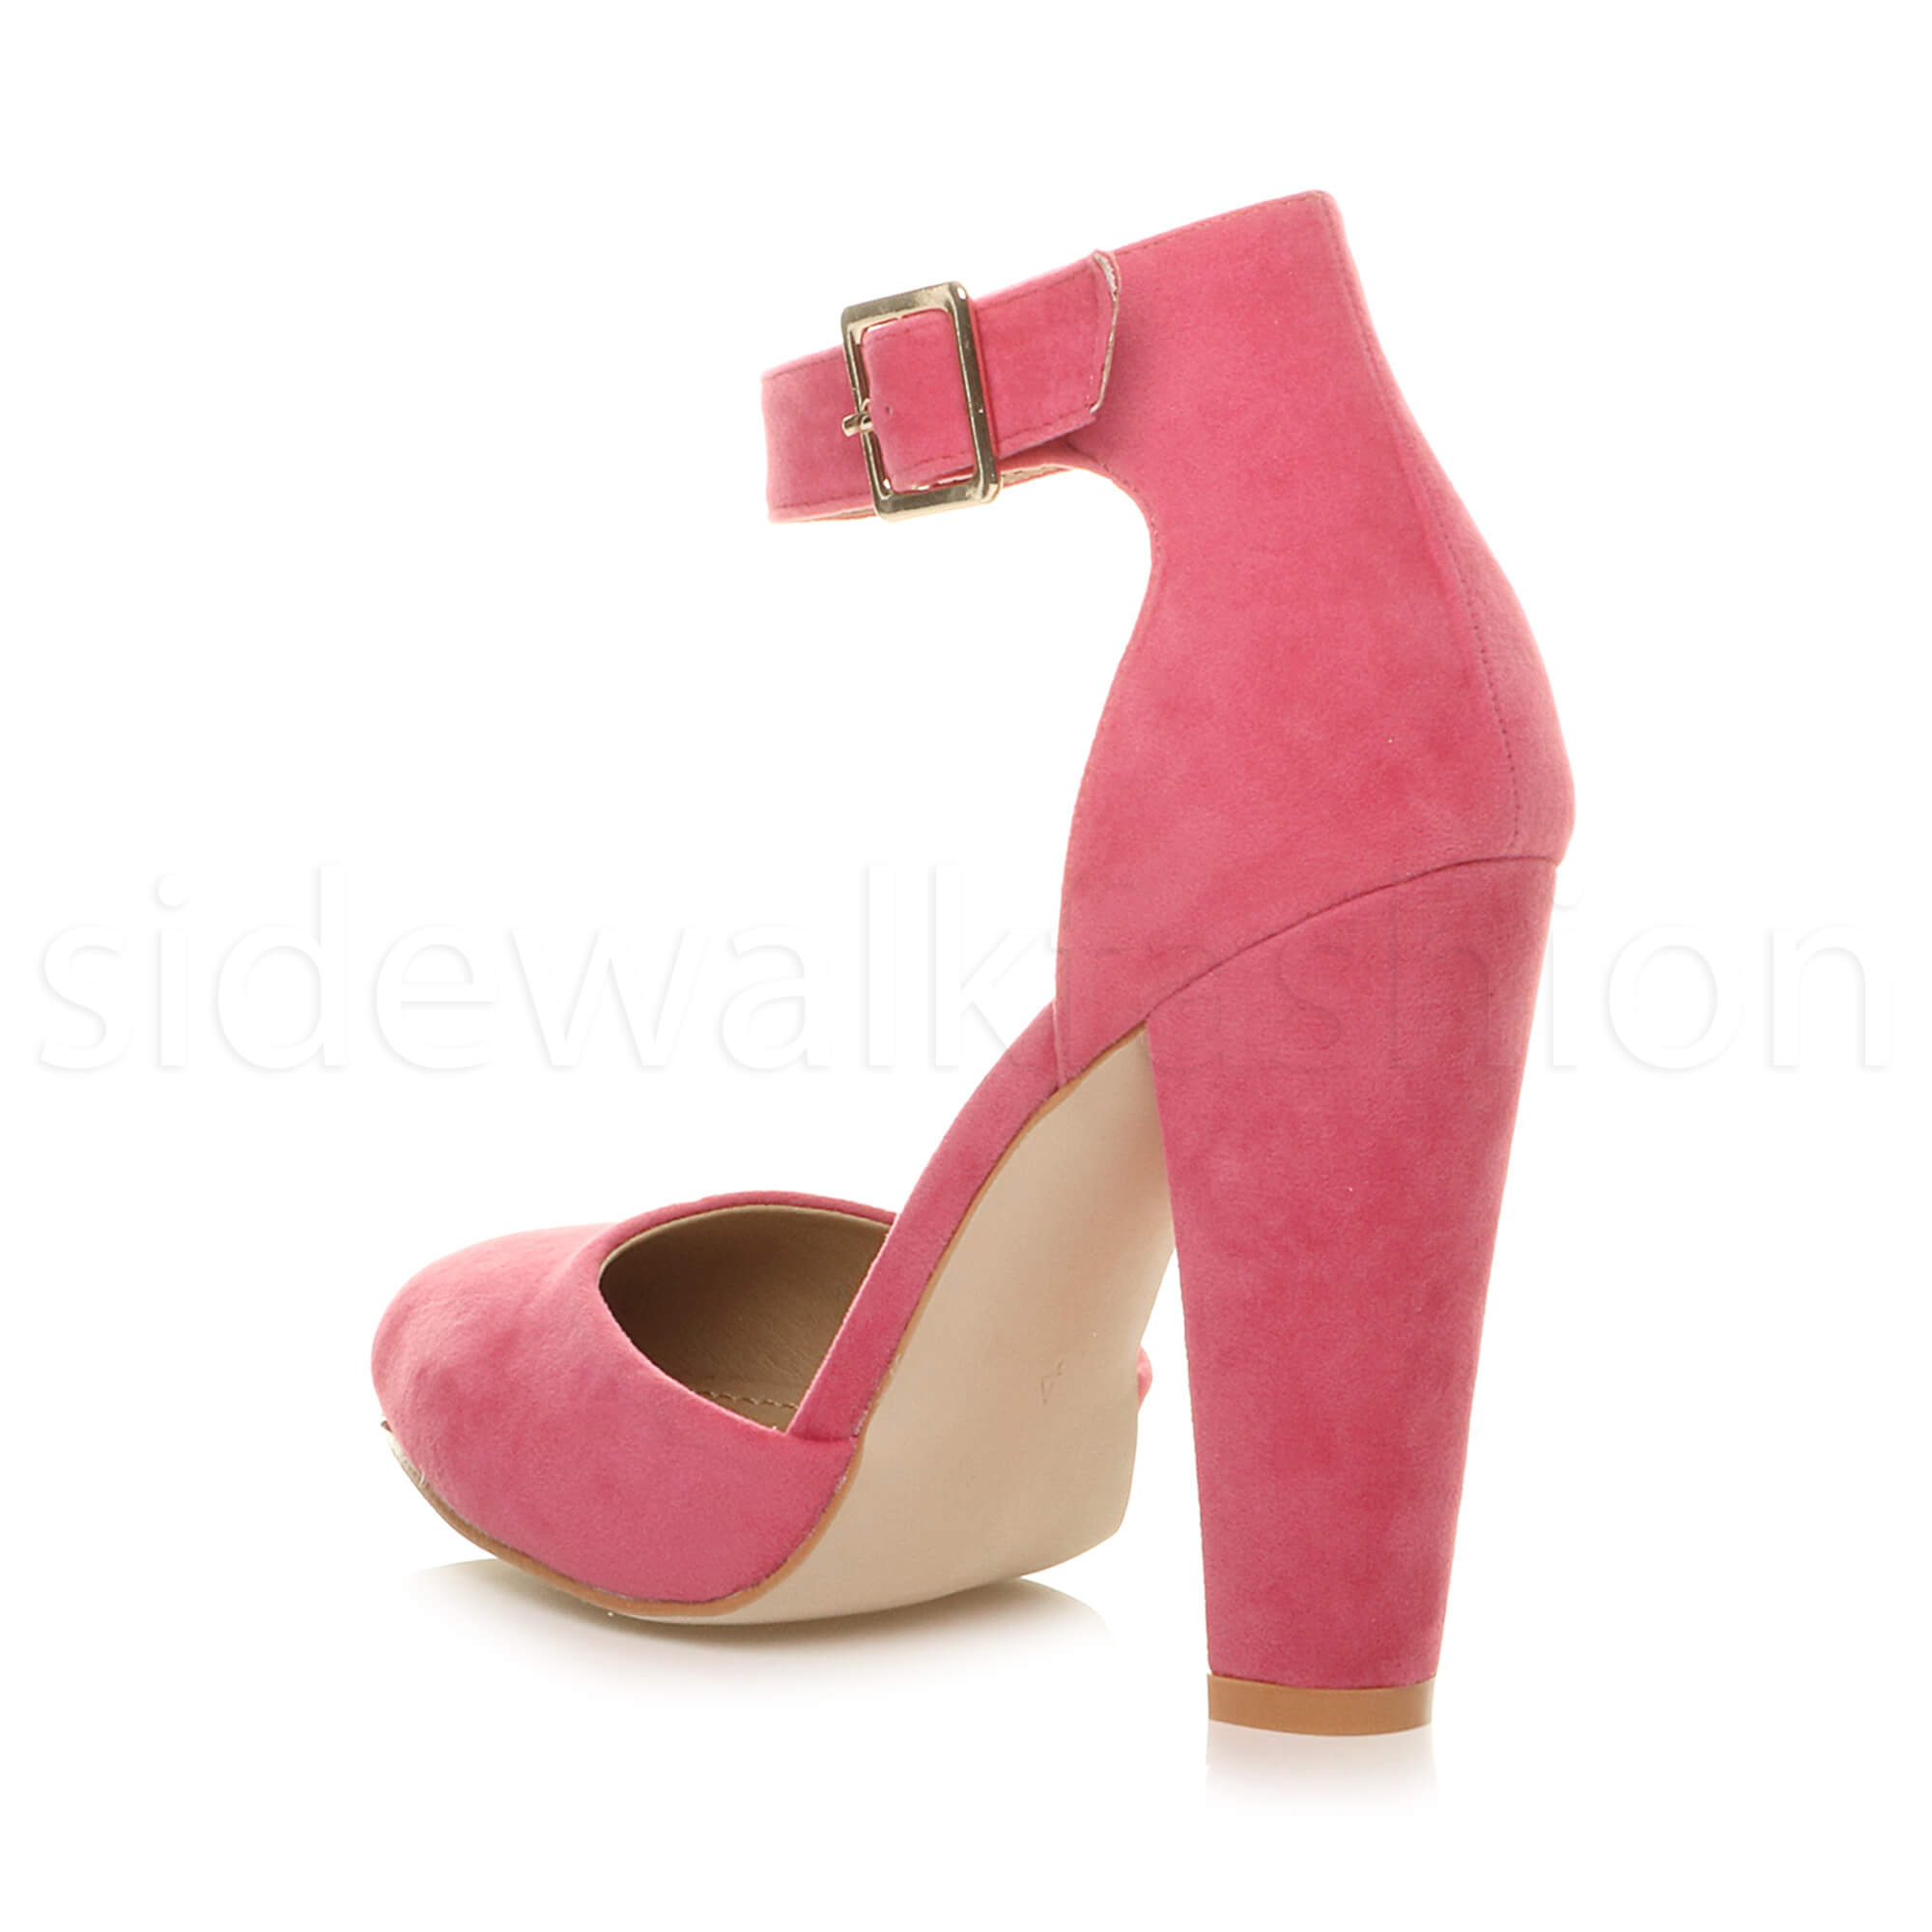 Coral / Pink suedette pointy toe court shoes with gold glitter heel ReHAzGn